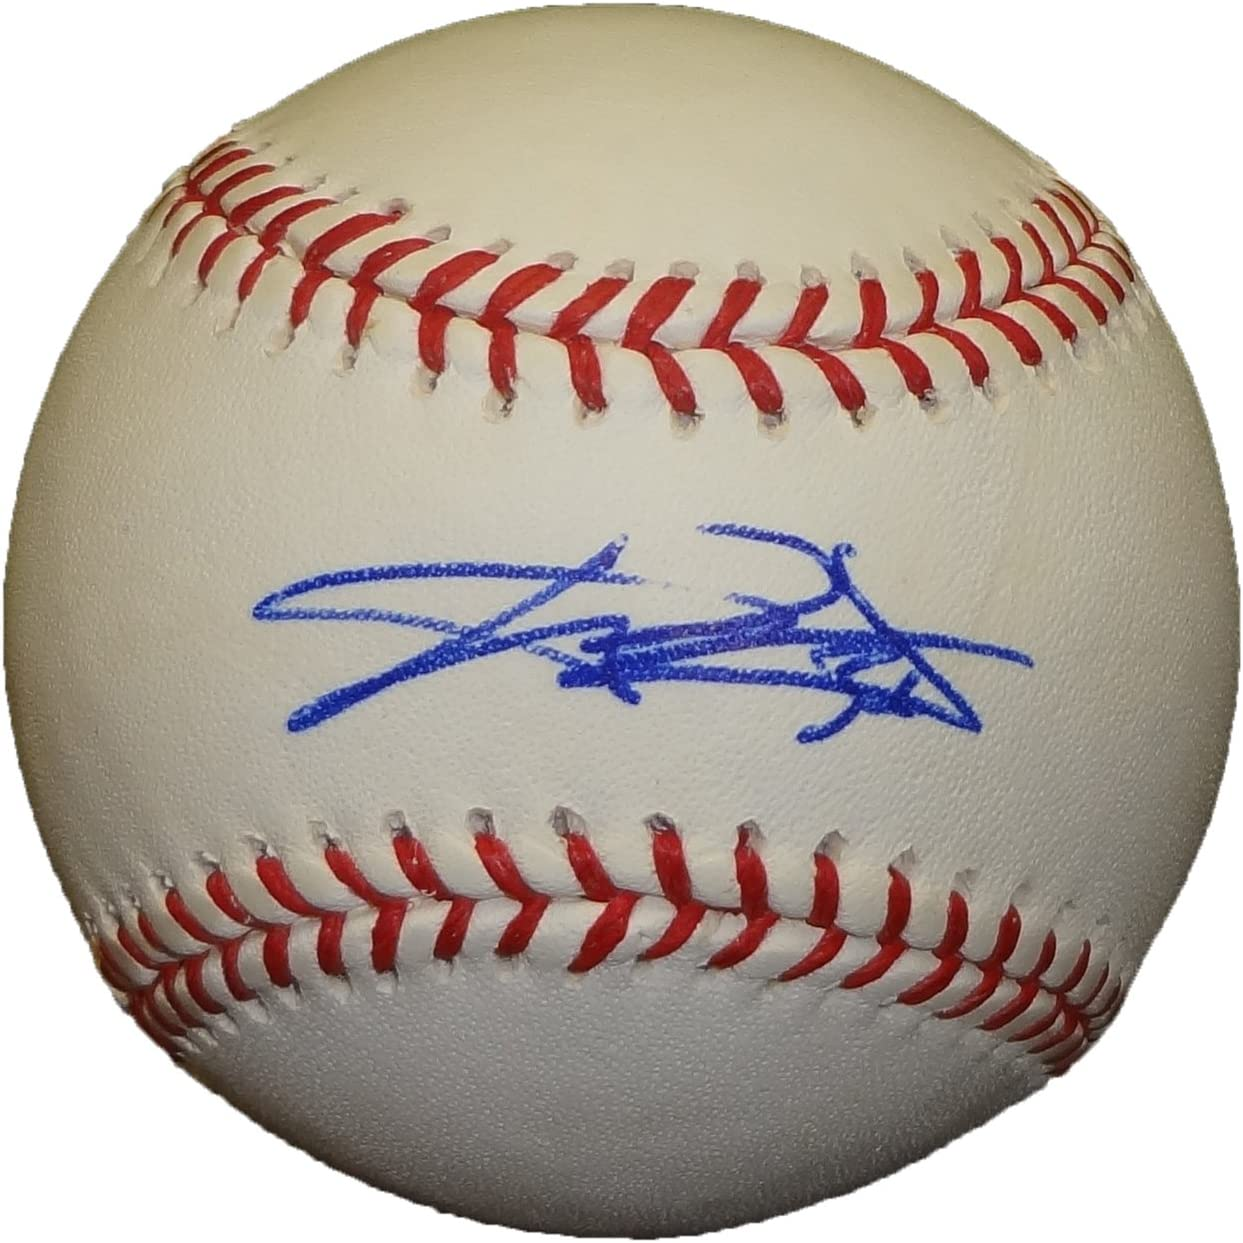 C.J. Wilson Autographed Official Major League Baseball W/PROOF, Picture of CJ Signing For Us, Texas Rangers, 2010 World Series, 2011 World Series, Los Angeles Angels of Anaheim 71LYJBNuNsL